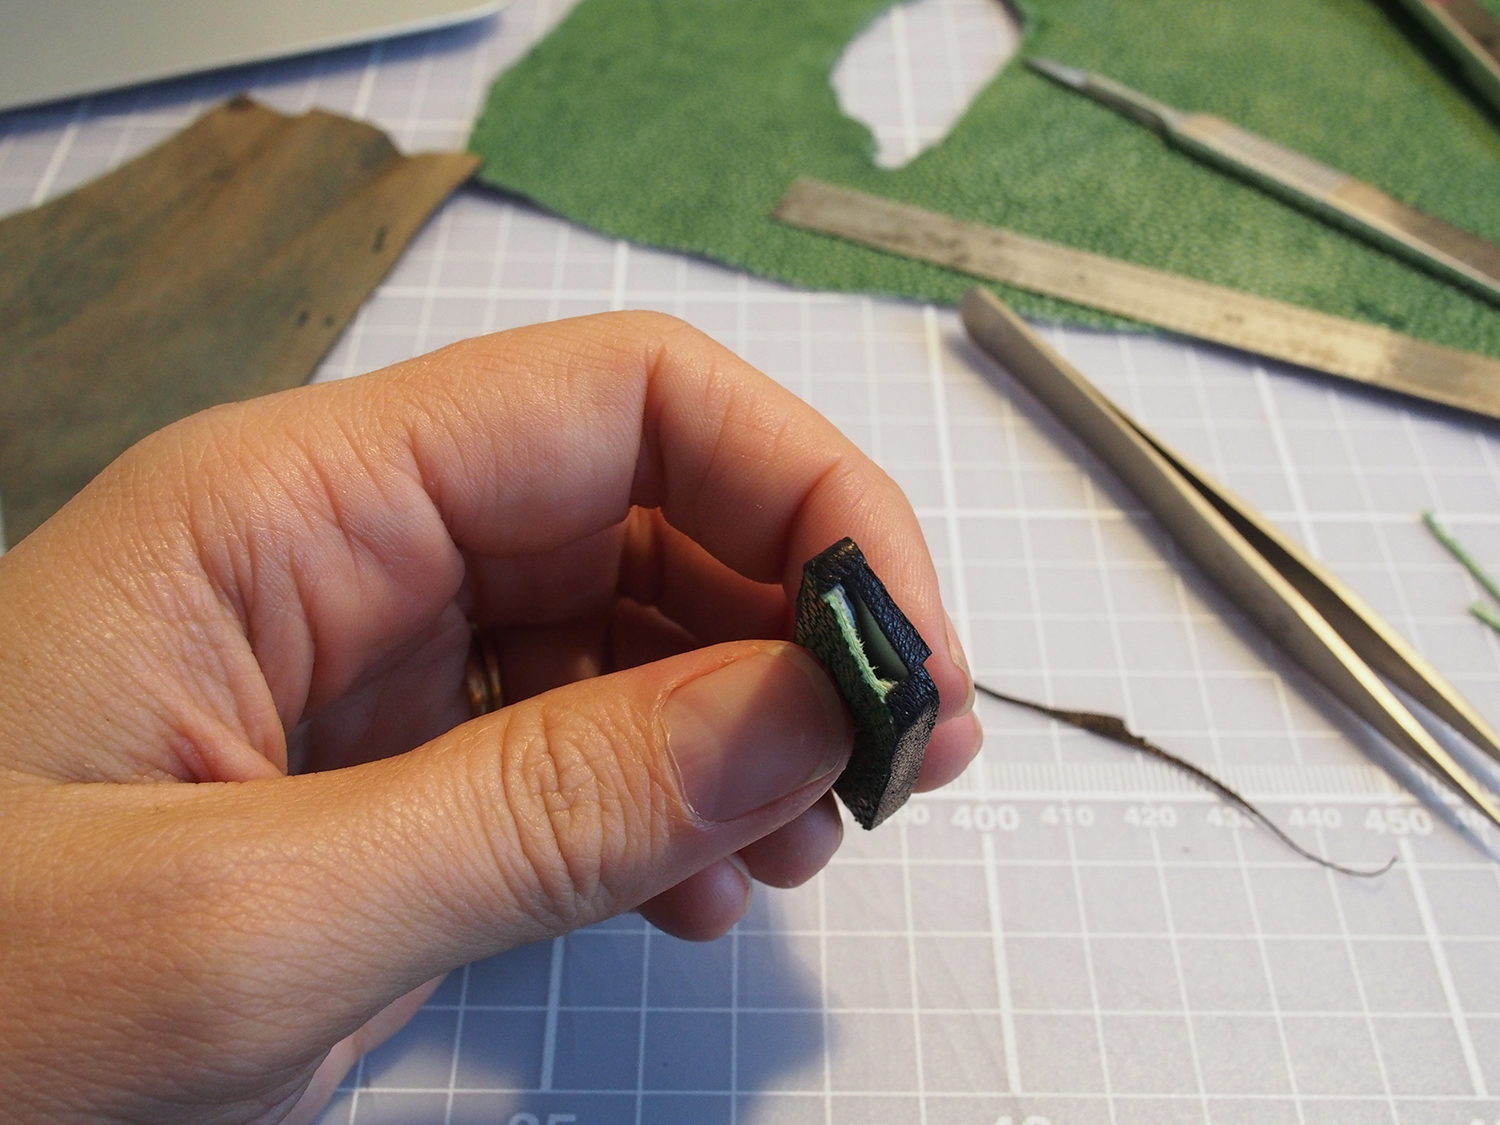 I cut two tiny skinny strips to put on the edge of the shagreen (here there's no card to support in the middle).